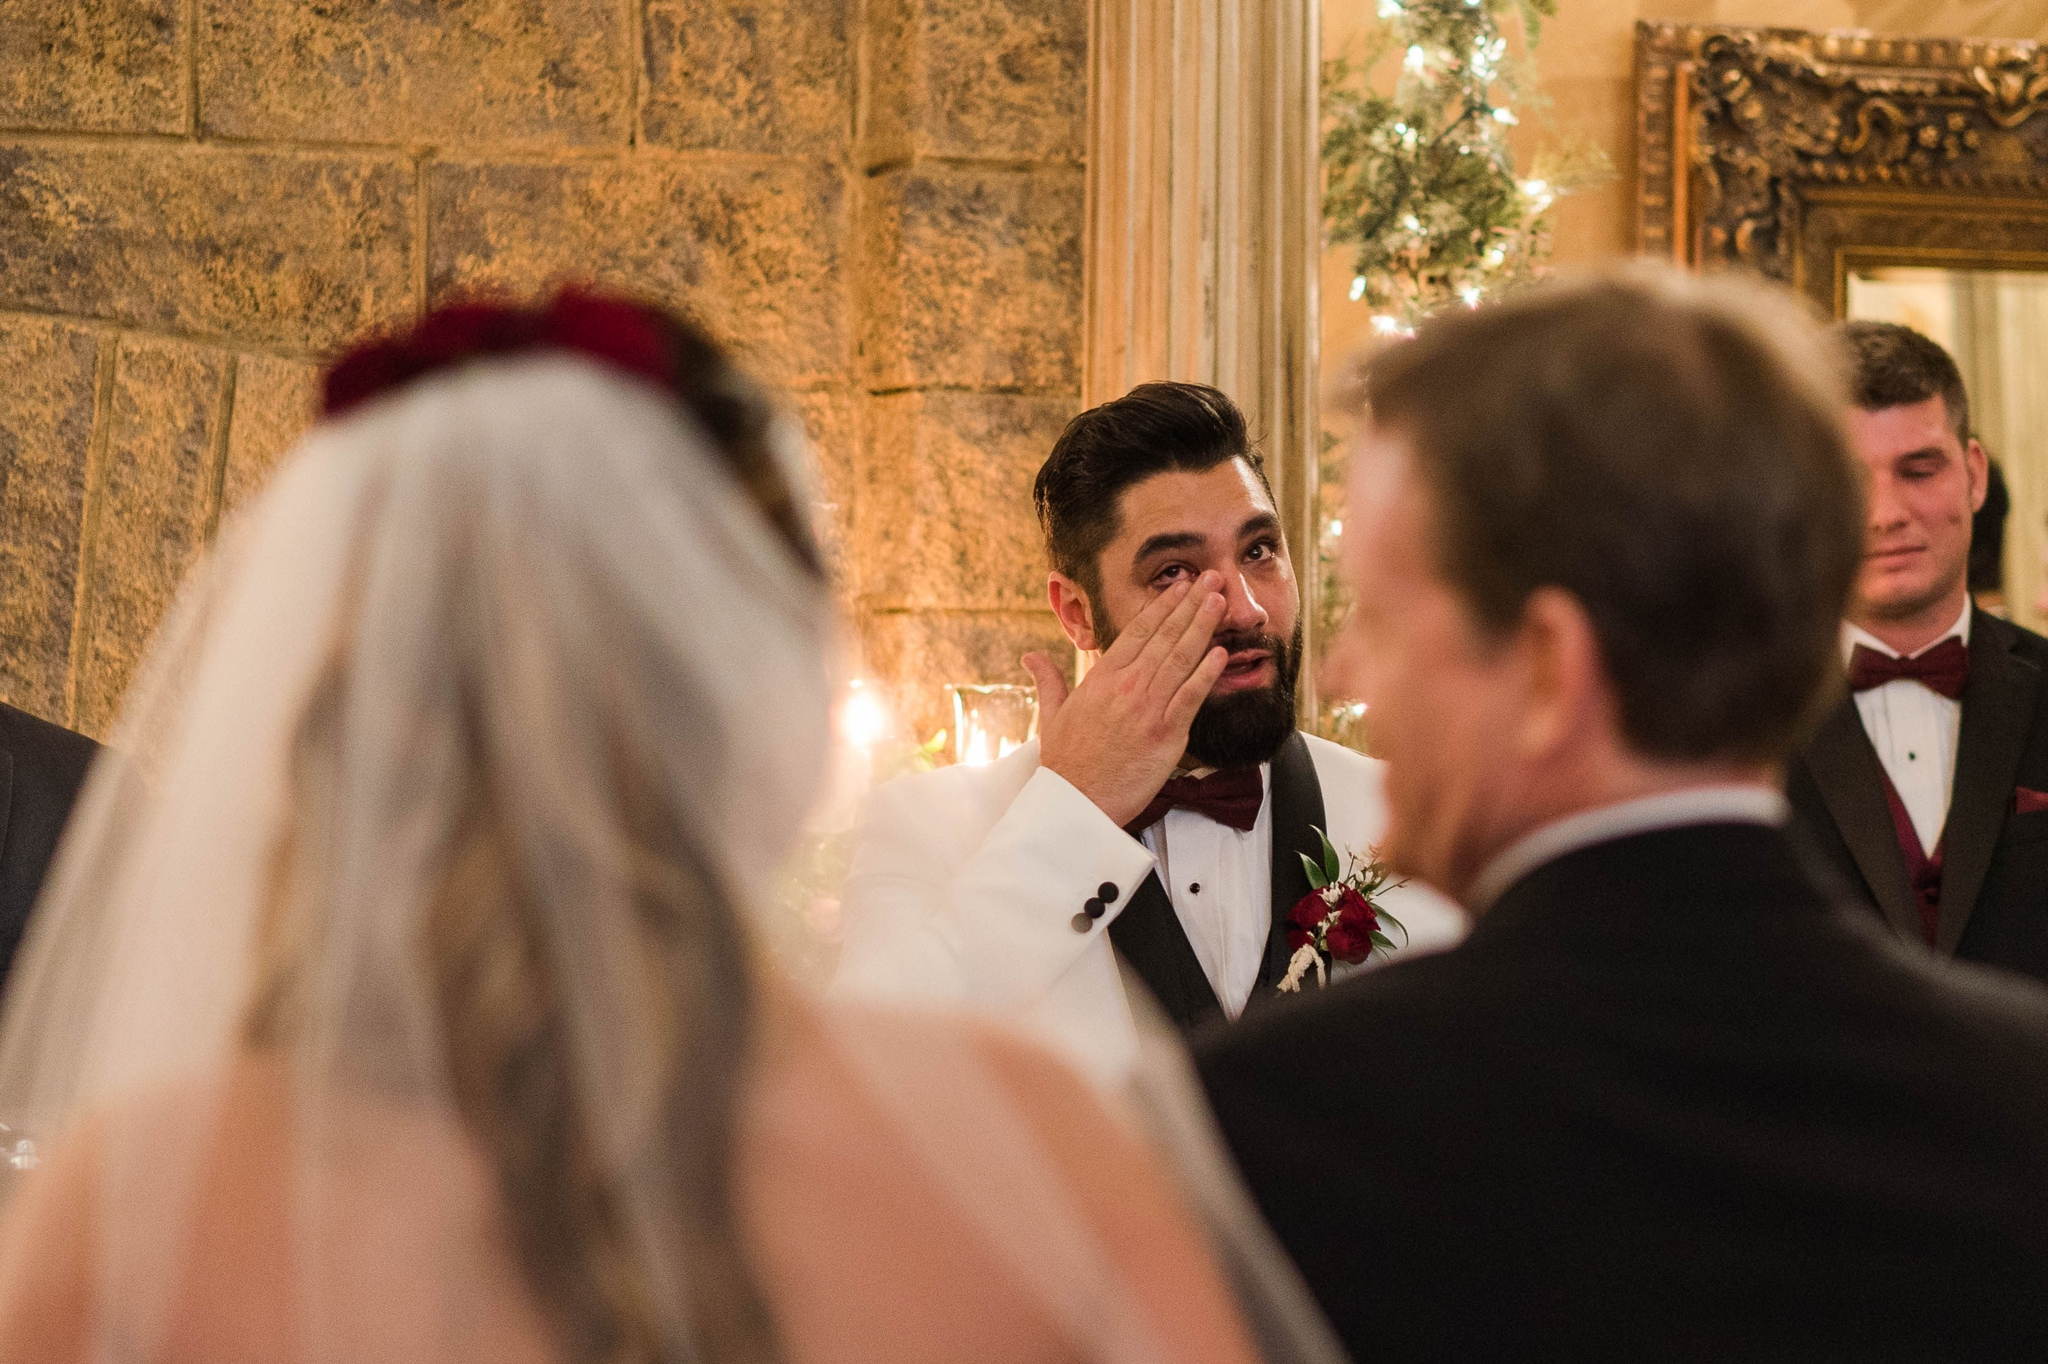 Groom wiping the tears from his face as he sees his bride standing in front of him at the altar - Honolulu Oahu Hawaii Wedding Photographer